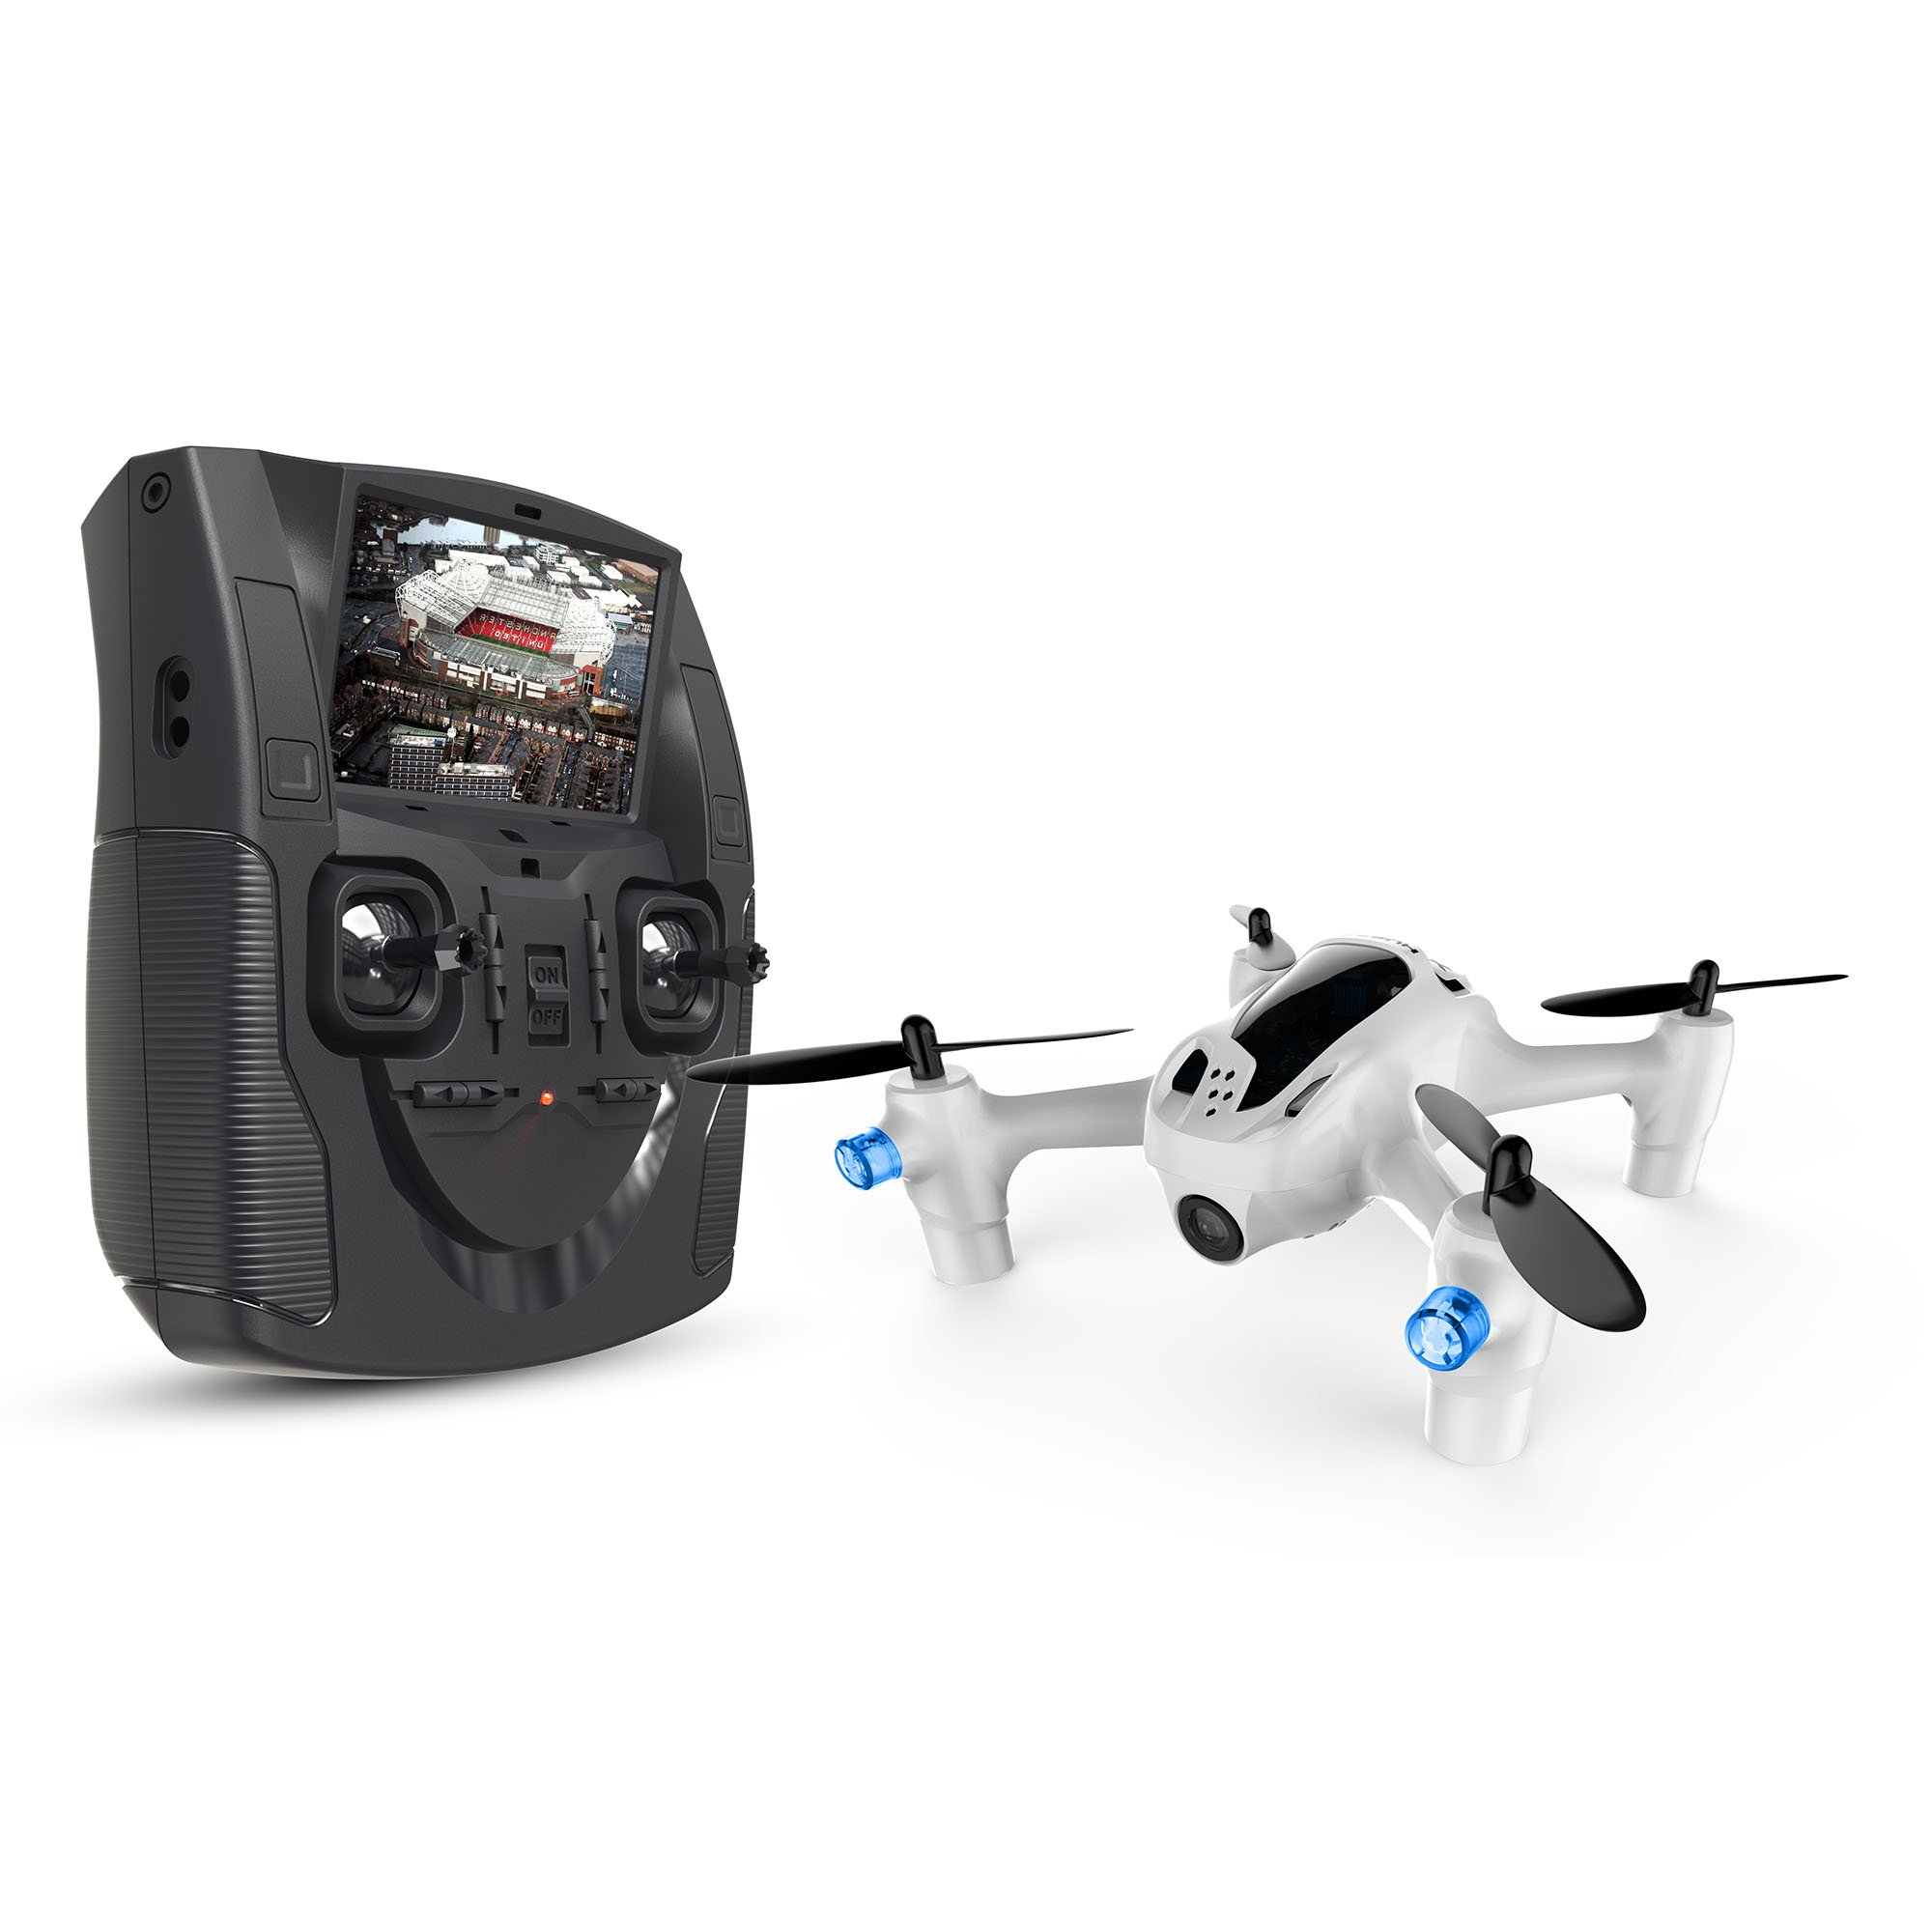 Hubsan X4 H107D+ FPV X4 Plus RTF Quadcopter with 720P HD Camera 6-axle Gyro RC Helicopter Drone